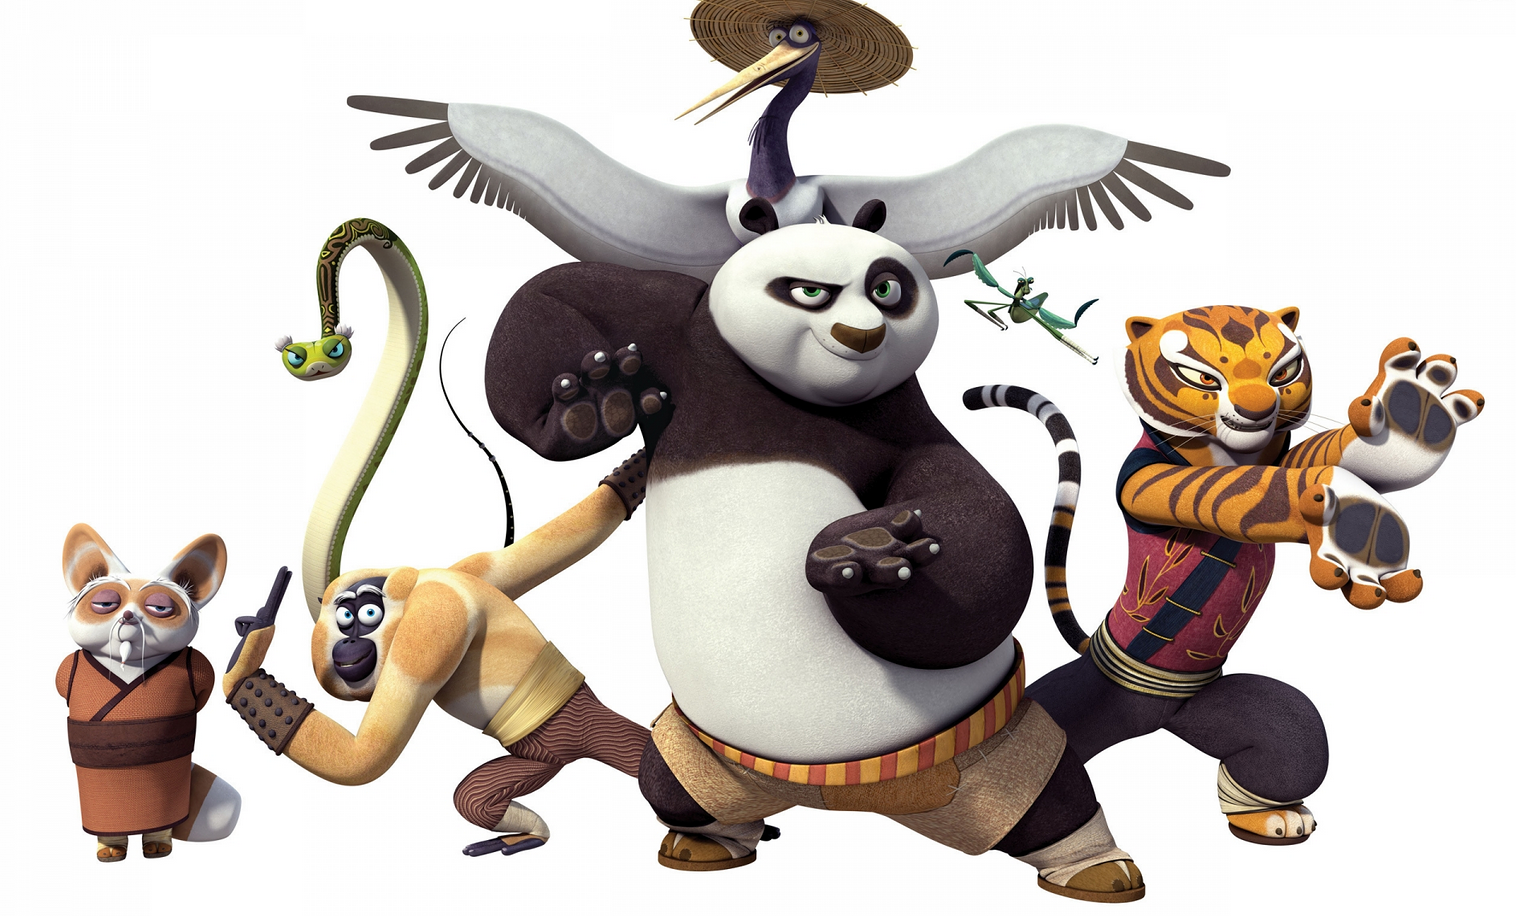 the-cast-of-kung-fu-panda-are-transformed-into-humans-463111